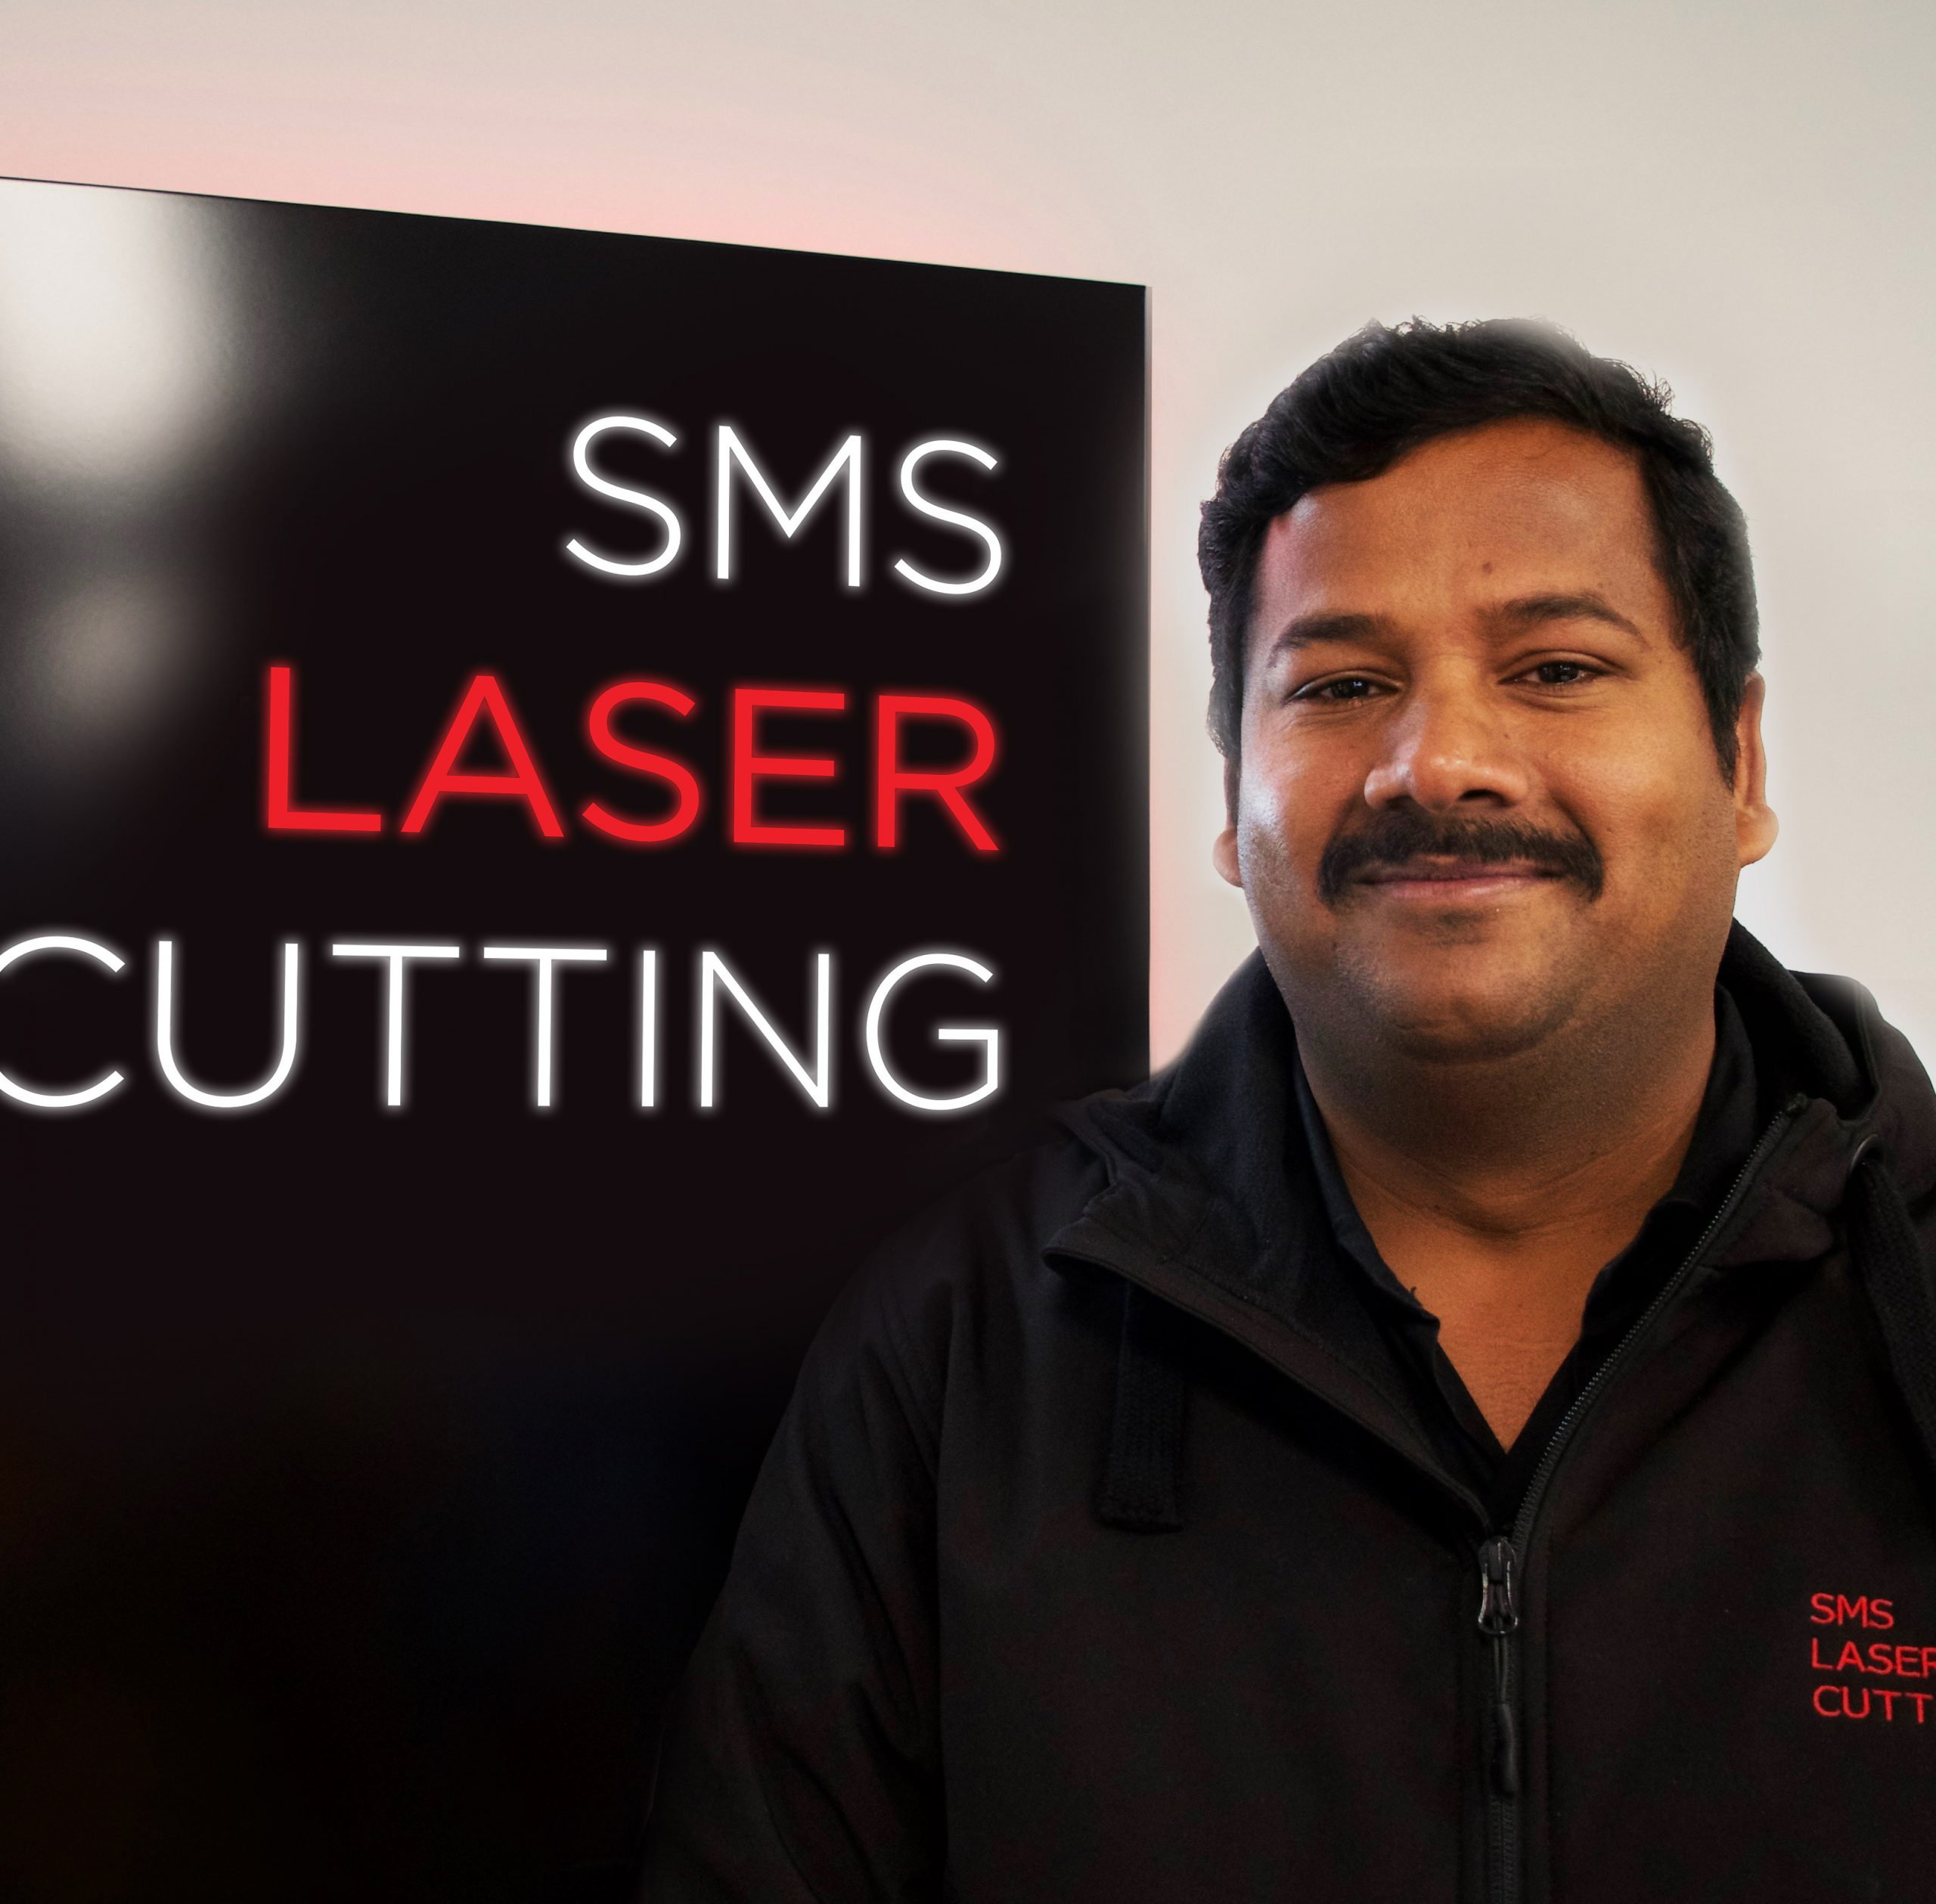 Balaji Kesavan, Production Manager, SMS Laser Cutting Melbourne